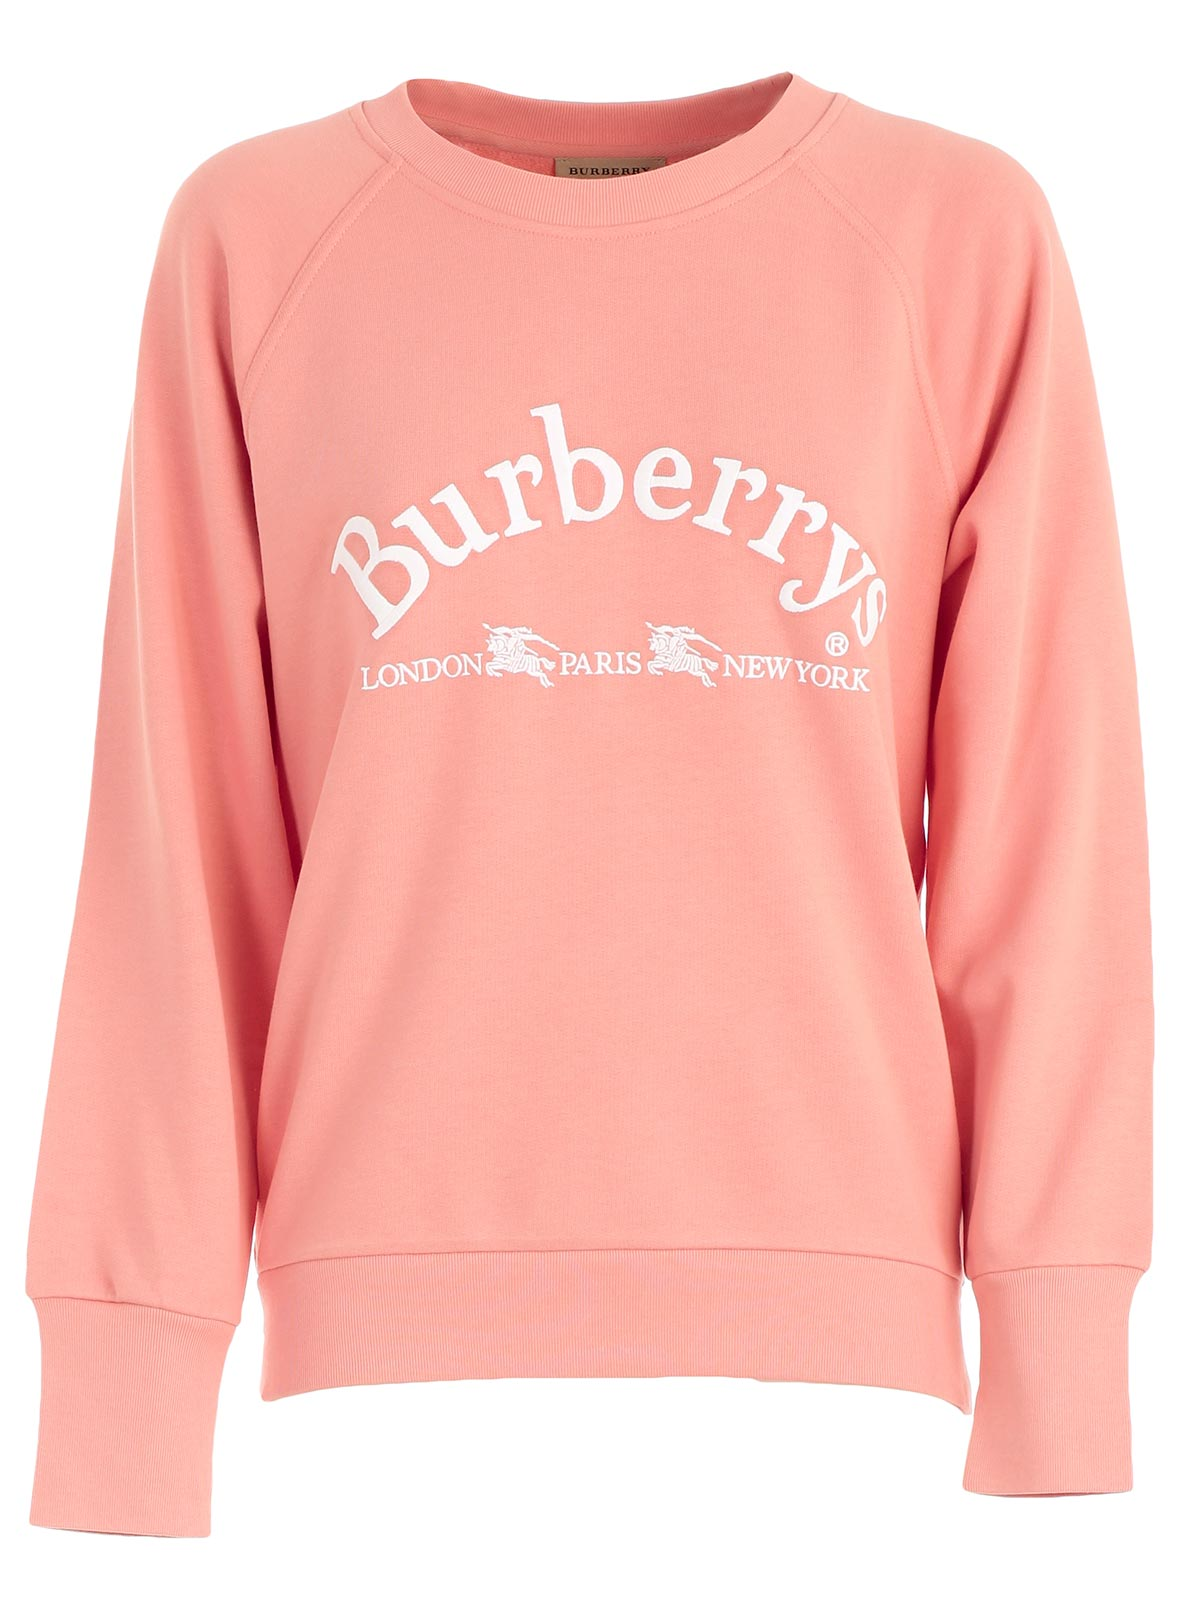 Picture of Burberry Sweatshirt